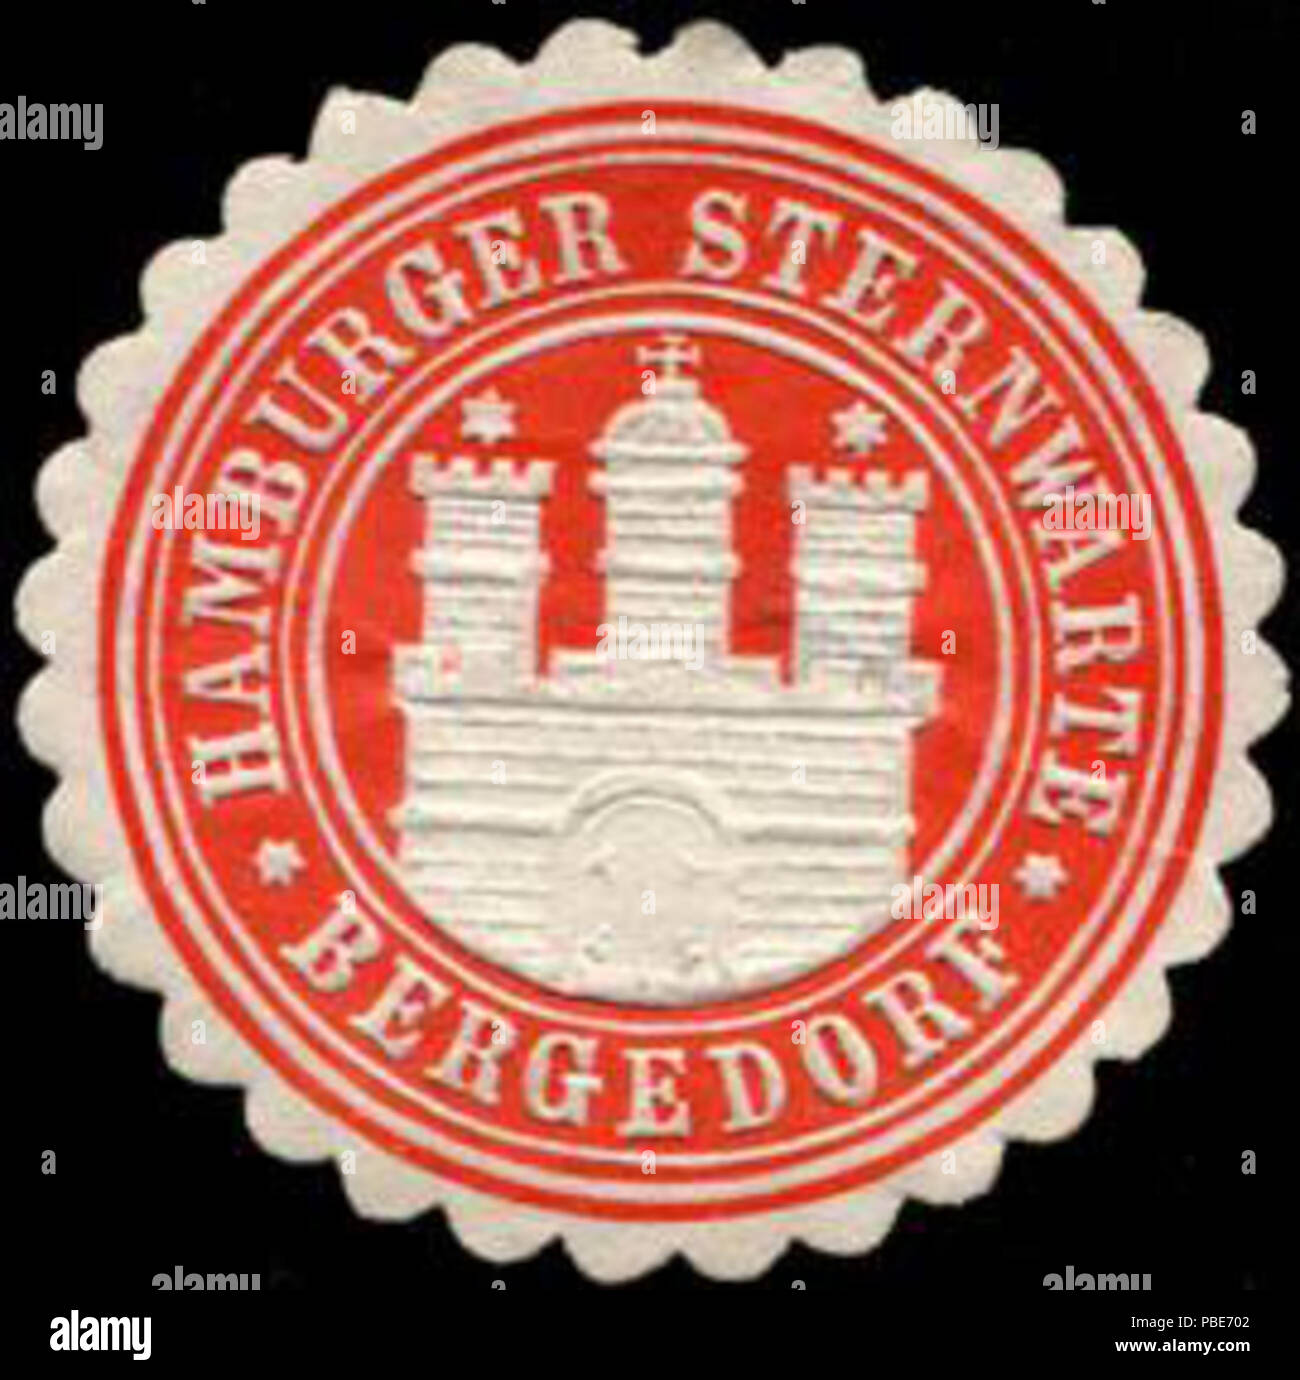 1399 Siegelmarke Hamburger Sternwarte - Bergedorf W0232606 Stock Photo